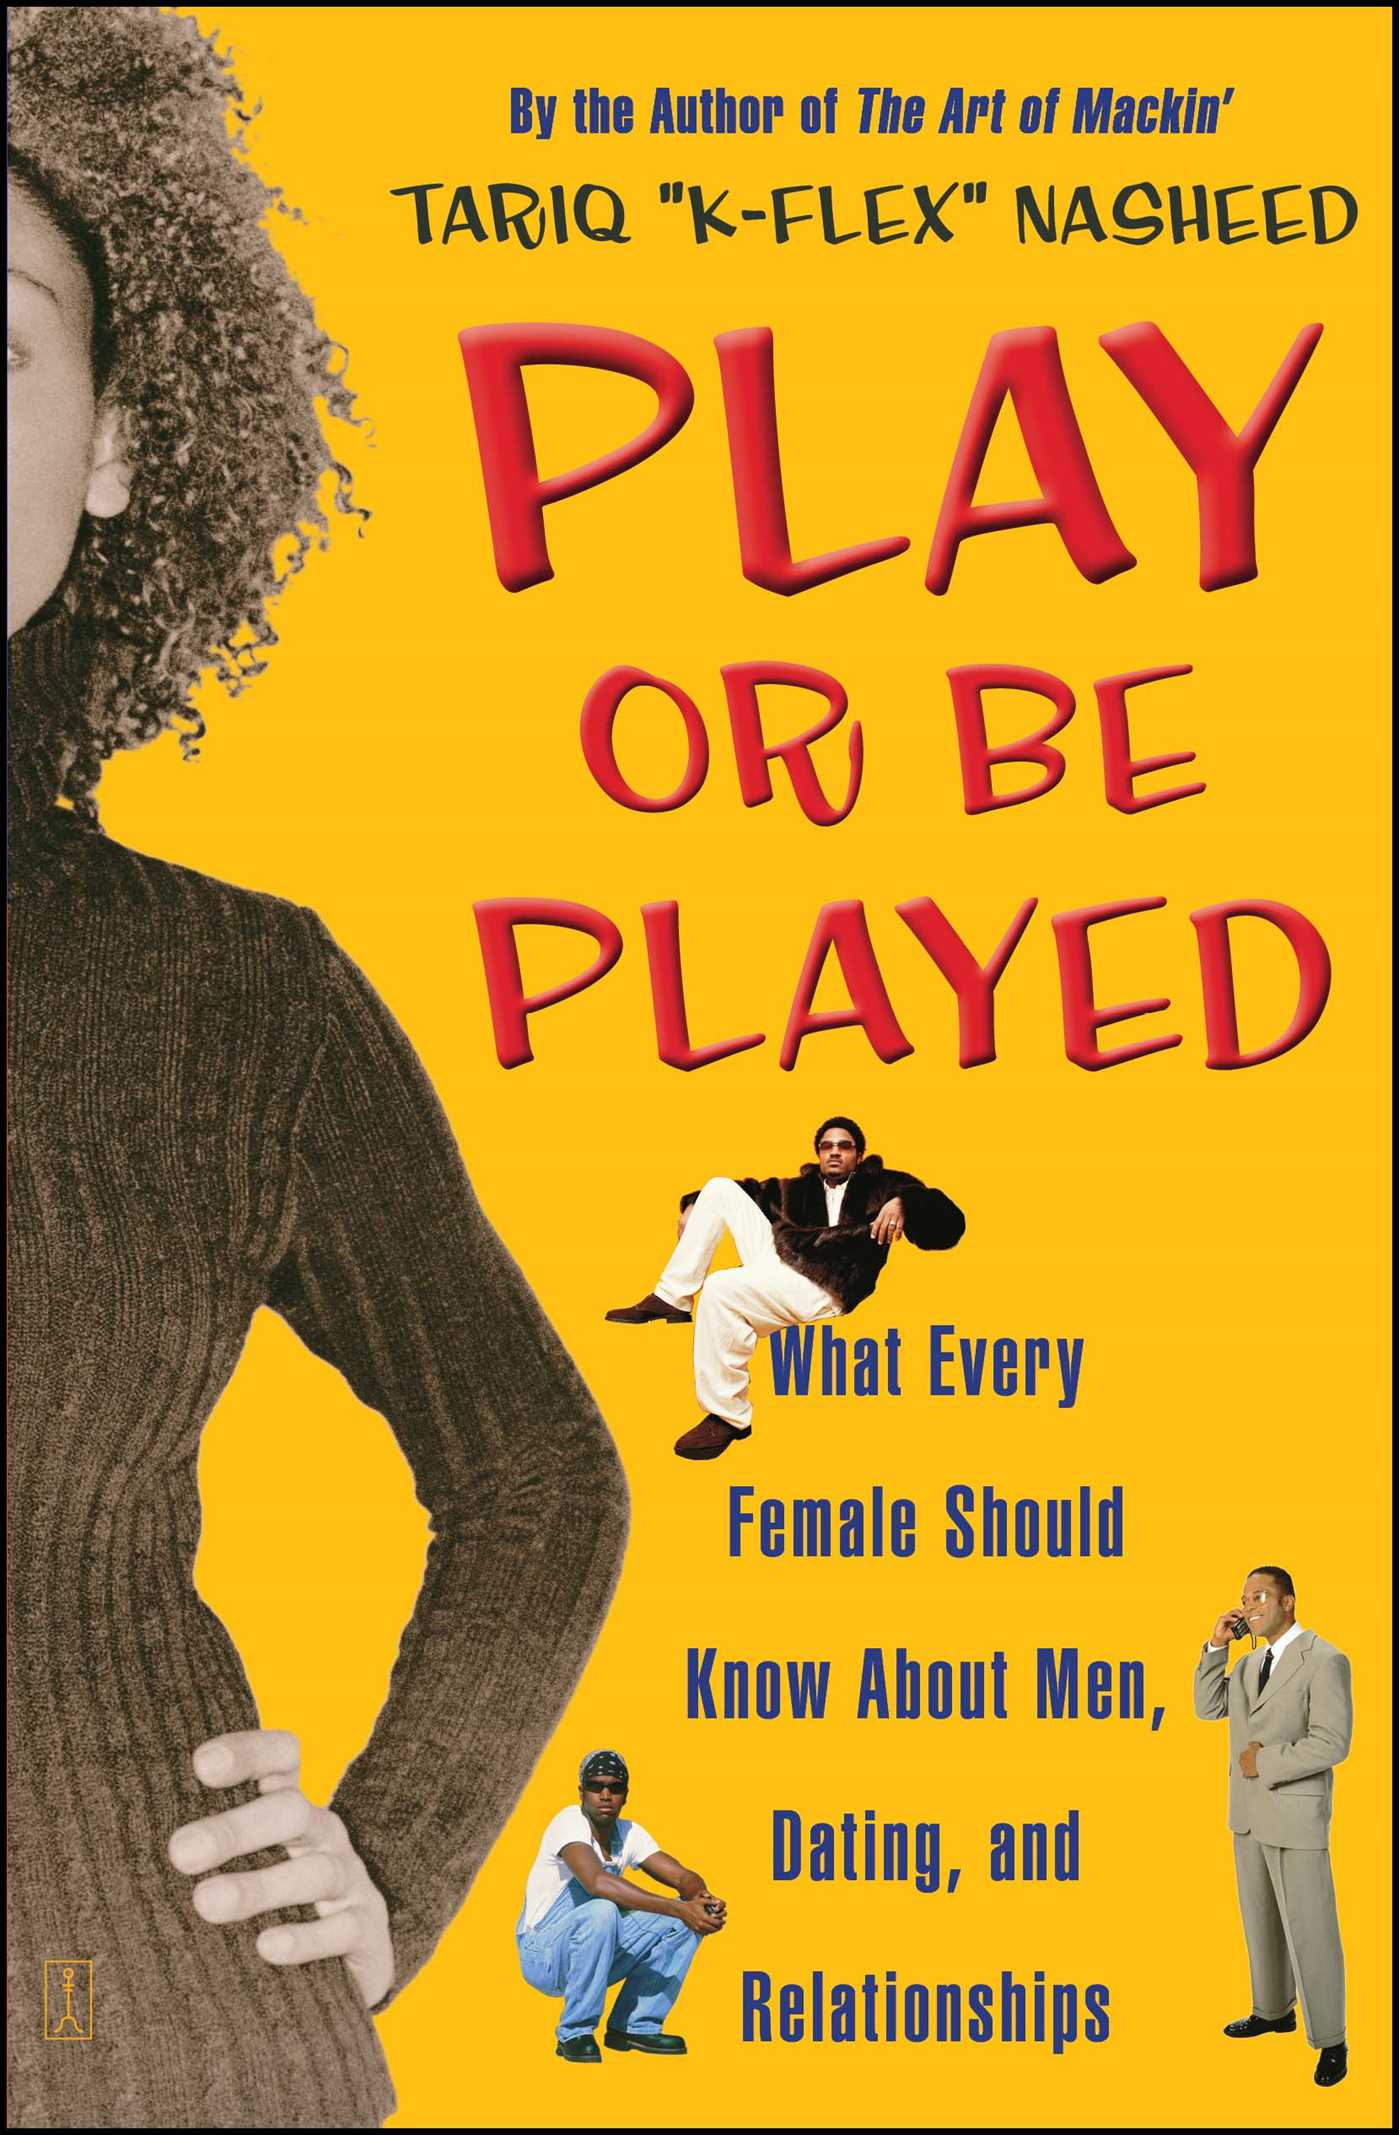 Book Cover Image (jpg): Play or Be Played